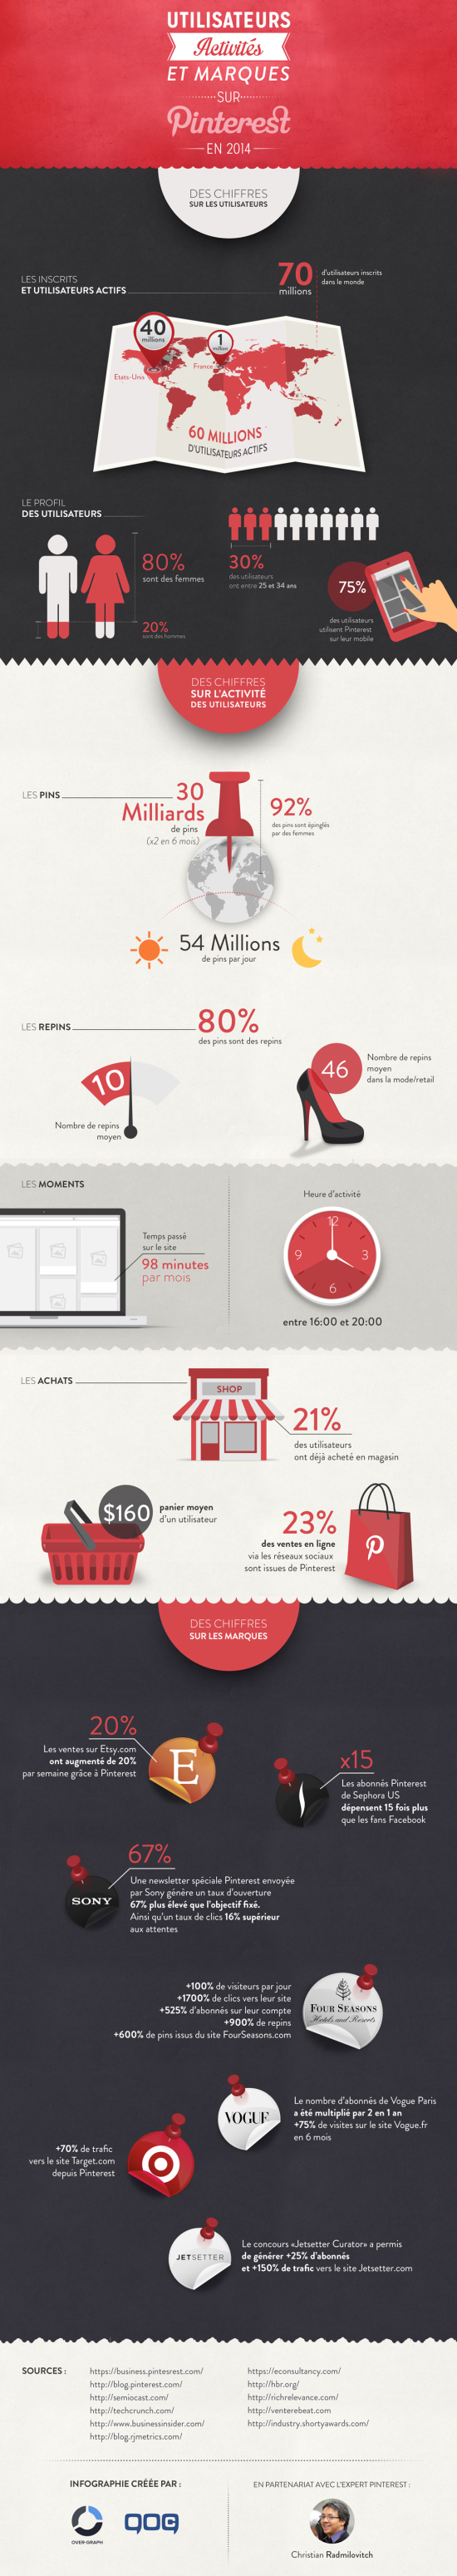 141107-infographie-pinterest-1